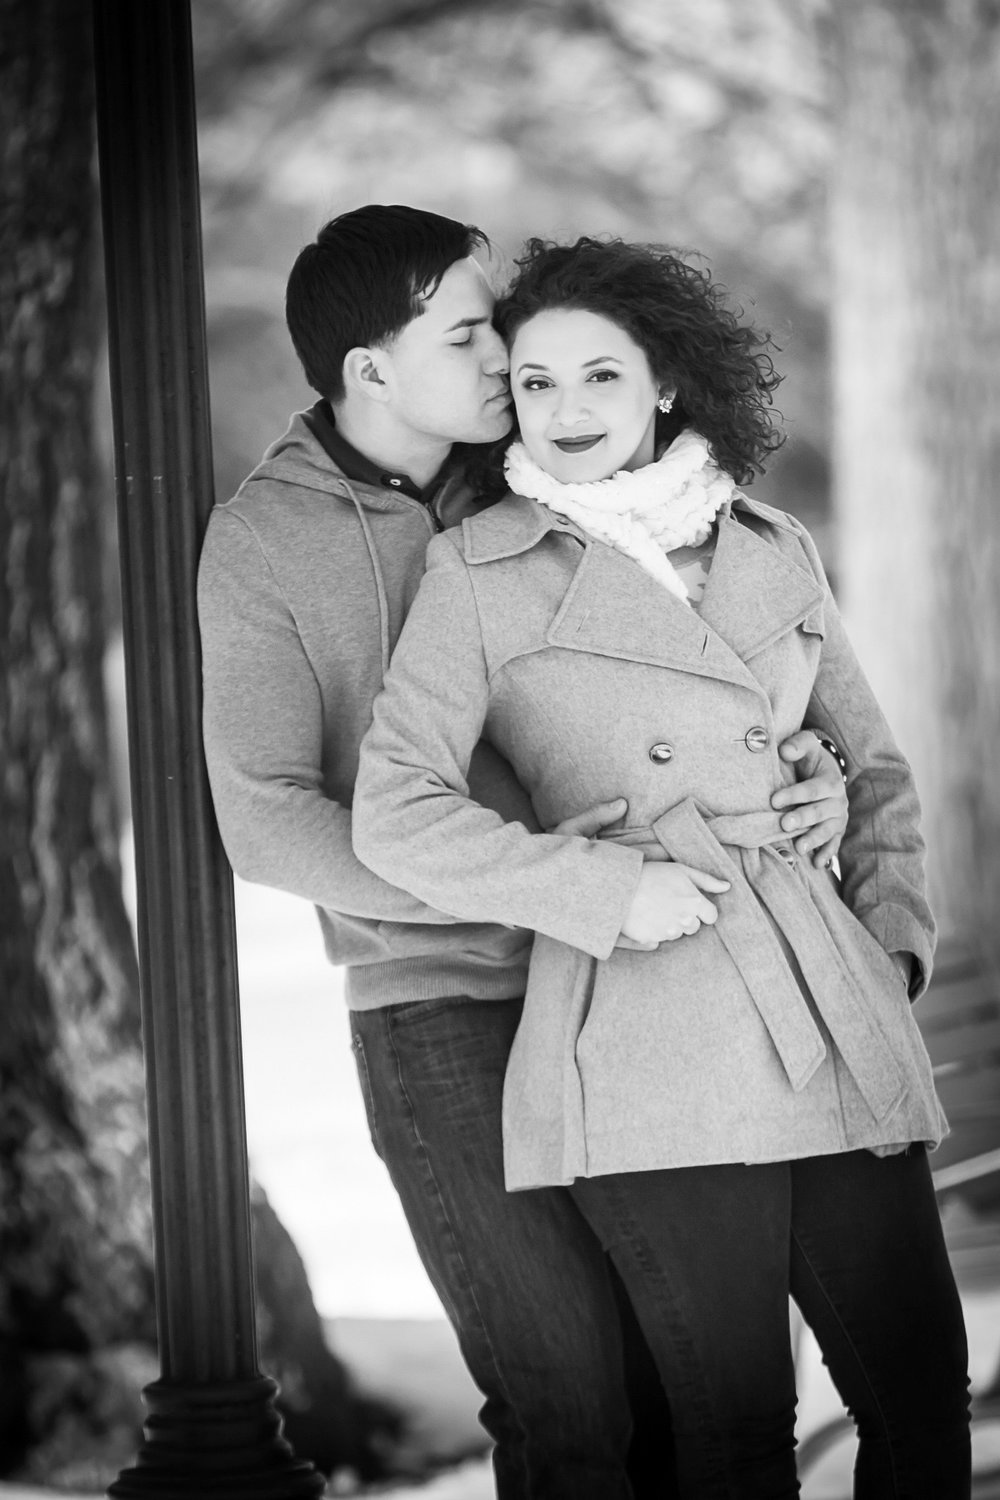 Winter Engagement session at Lambert Castle in Paterson